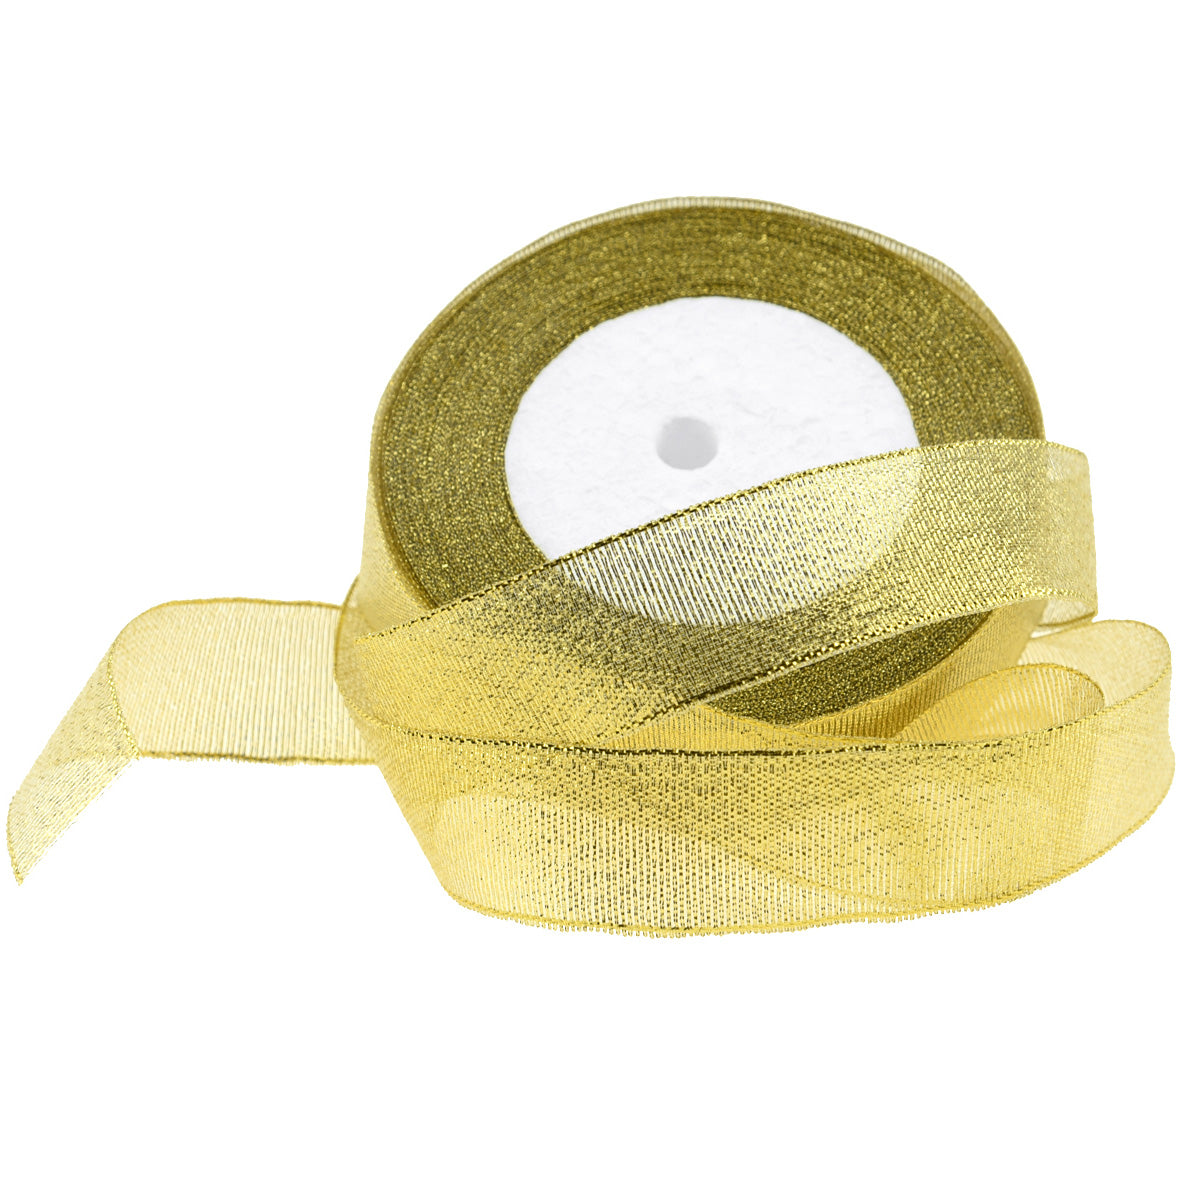 25mm Gold Metallic  Single Sided Ribbon